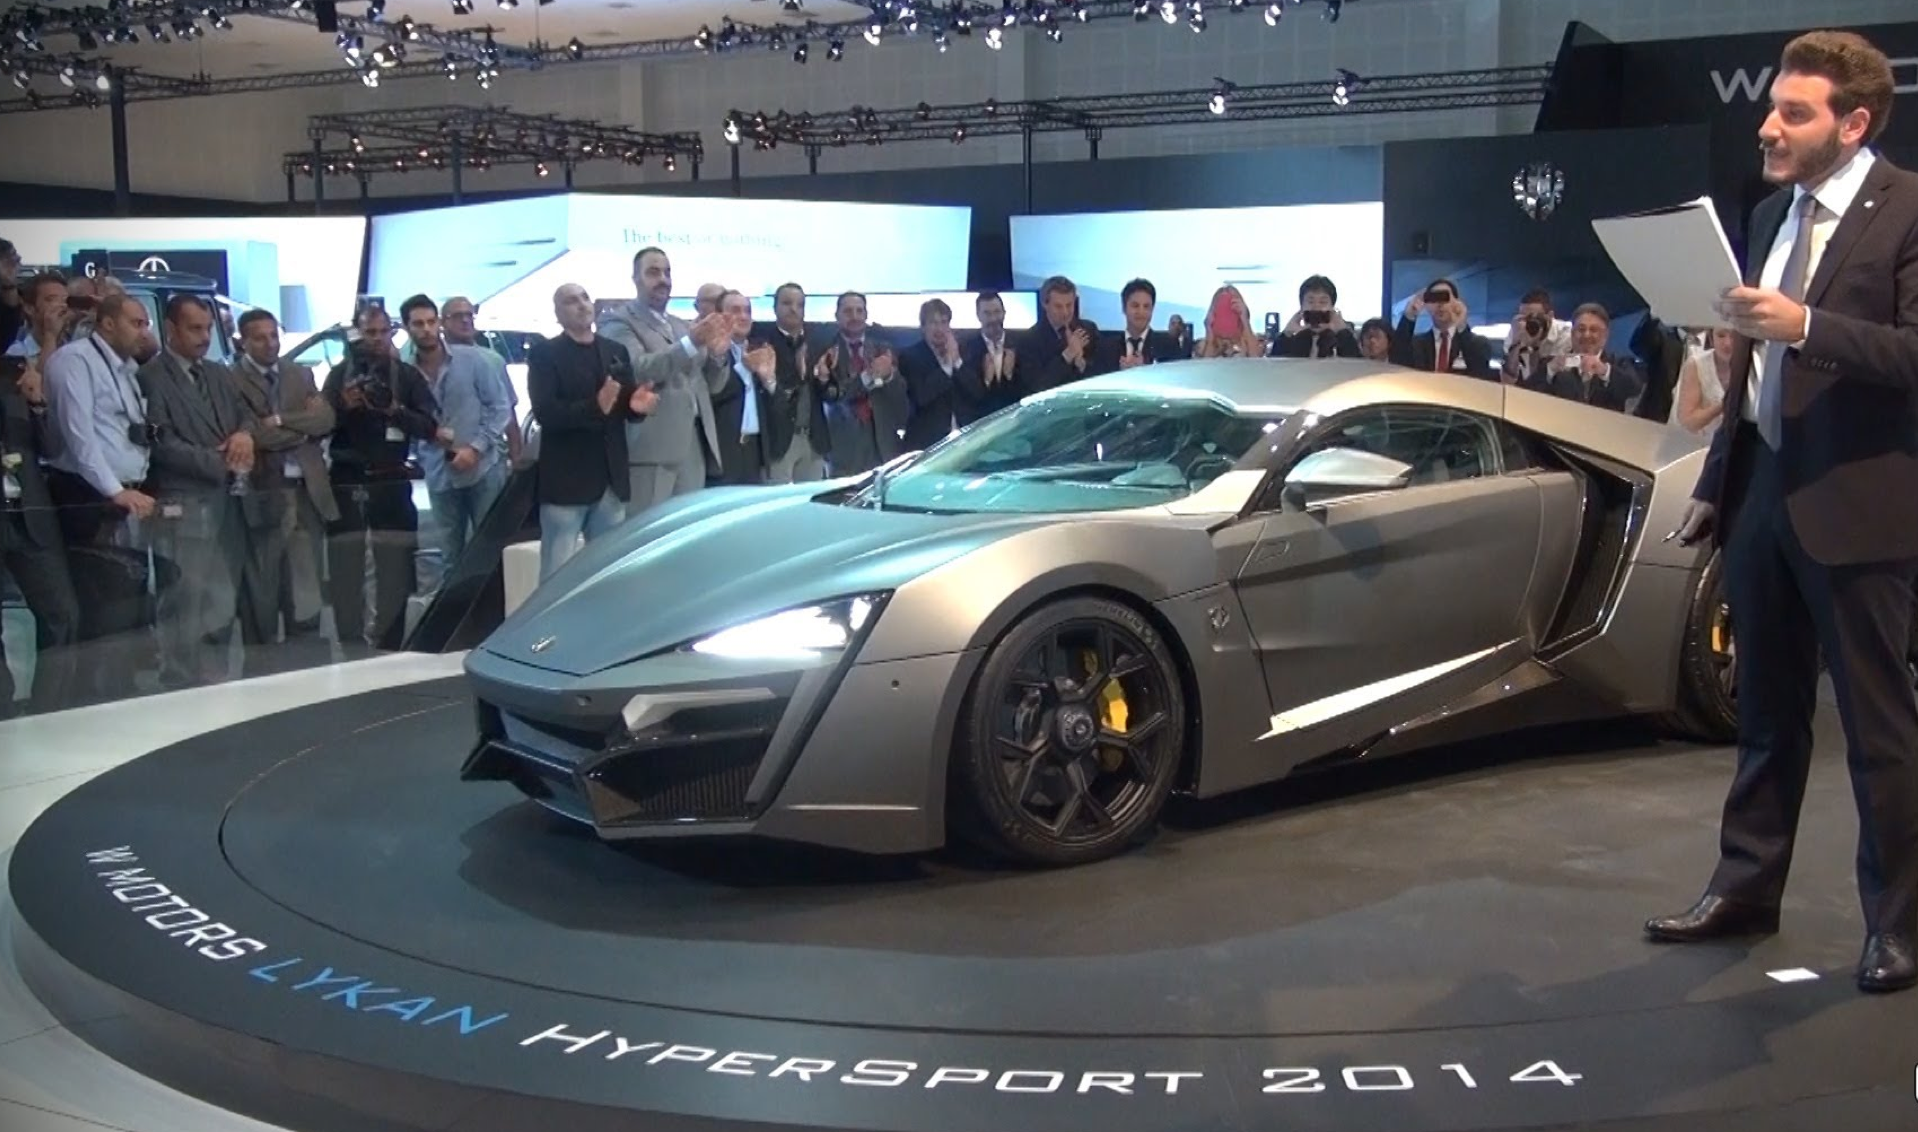 The 2014 Lykan Hypersport Being Being Introduced At The